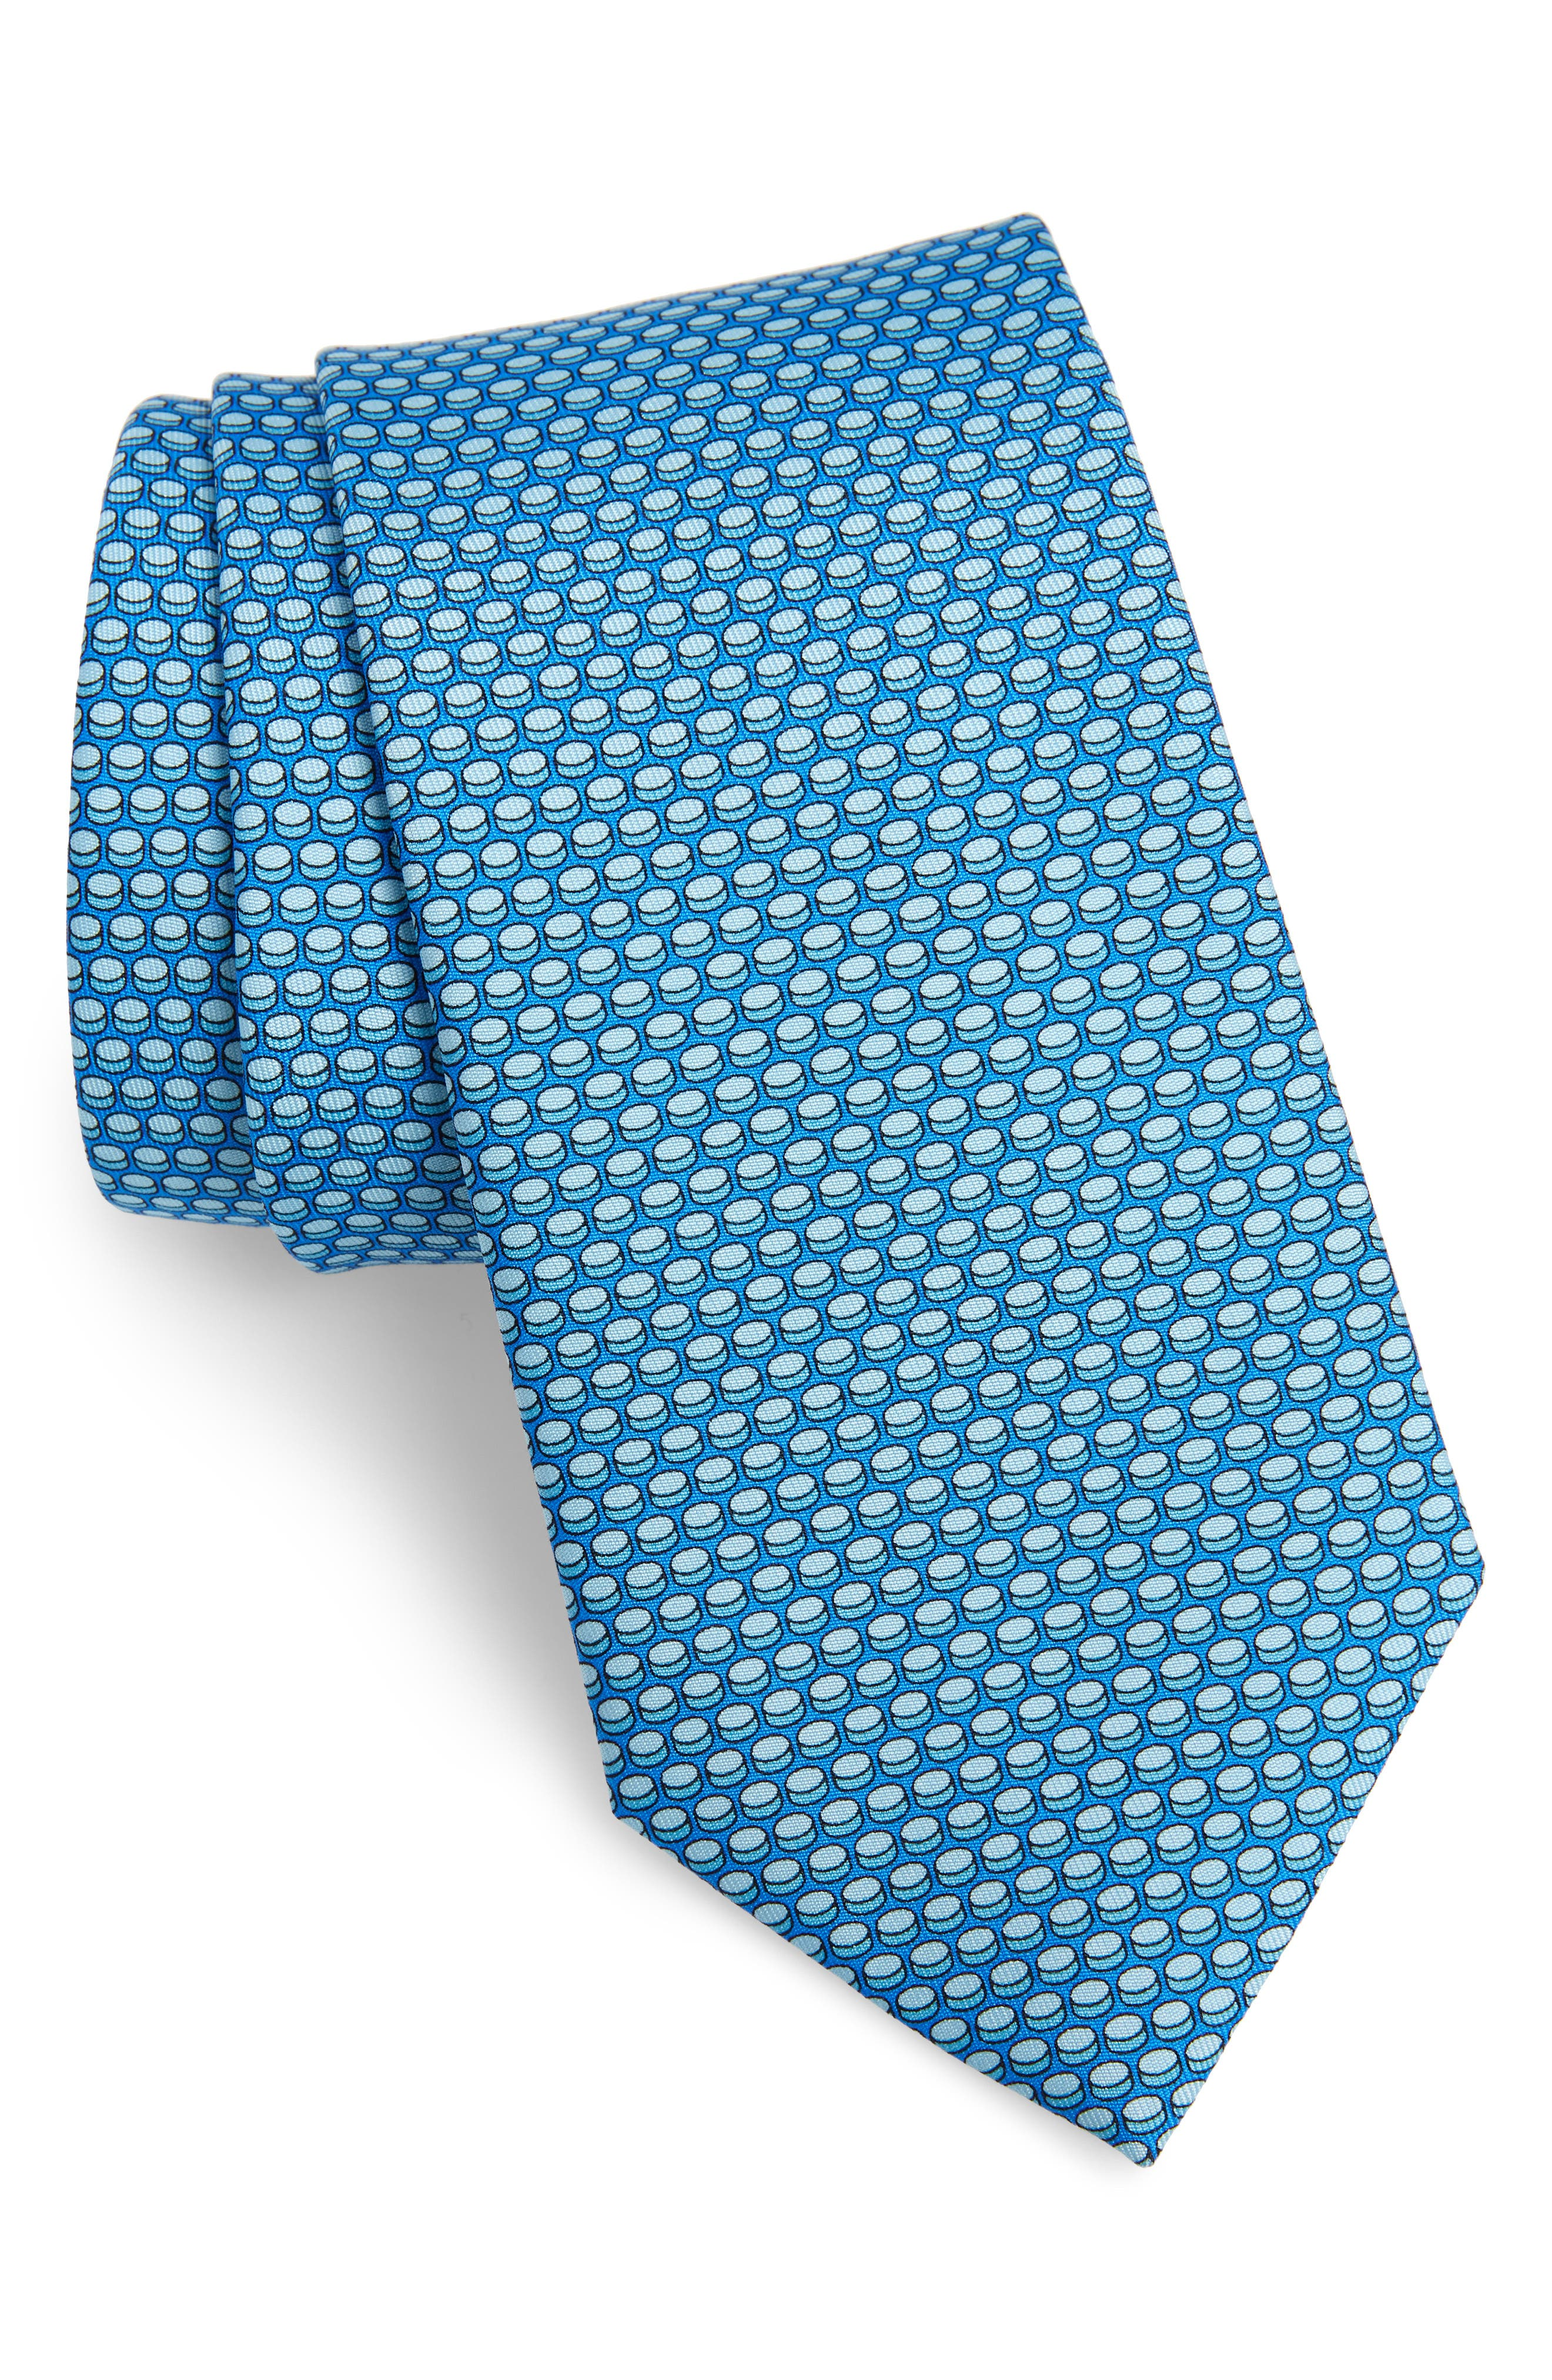 Hockey Puck Silk Tie,                             Main thumbnail 1, color,                             BLUE